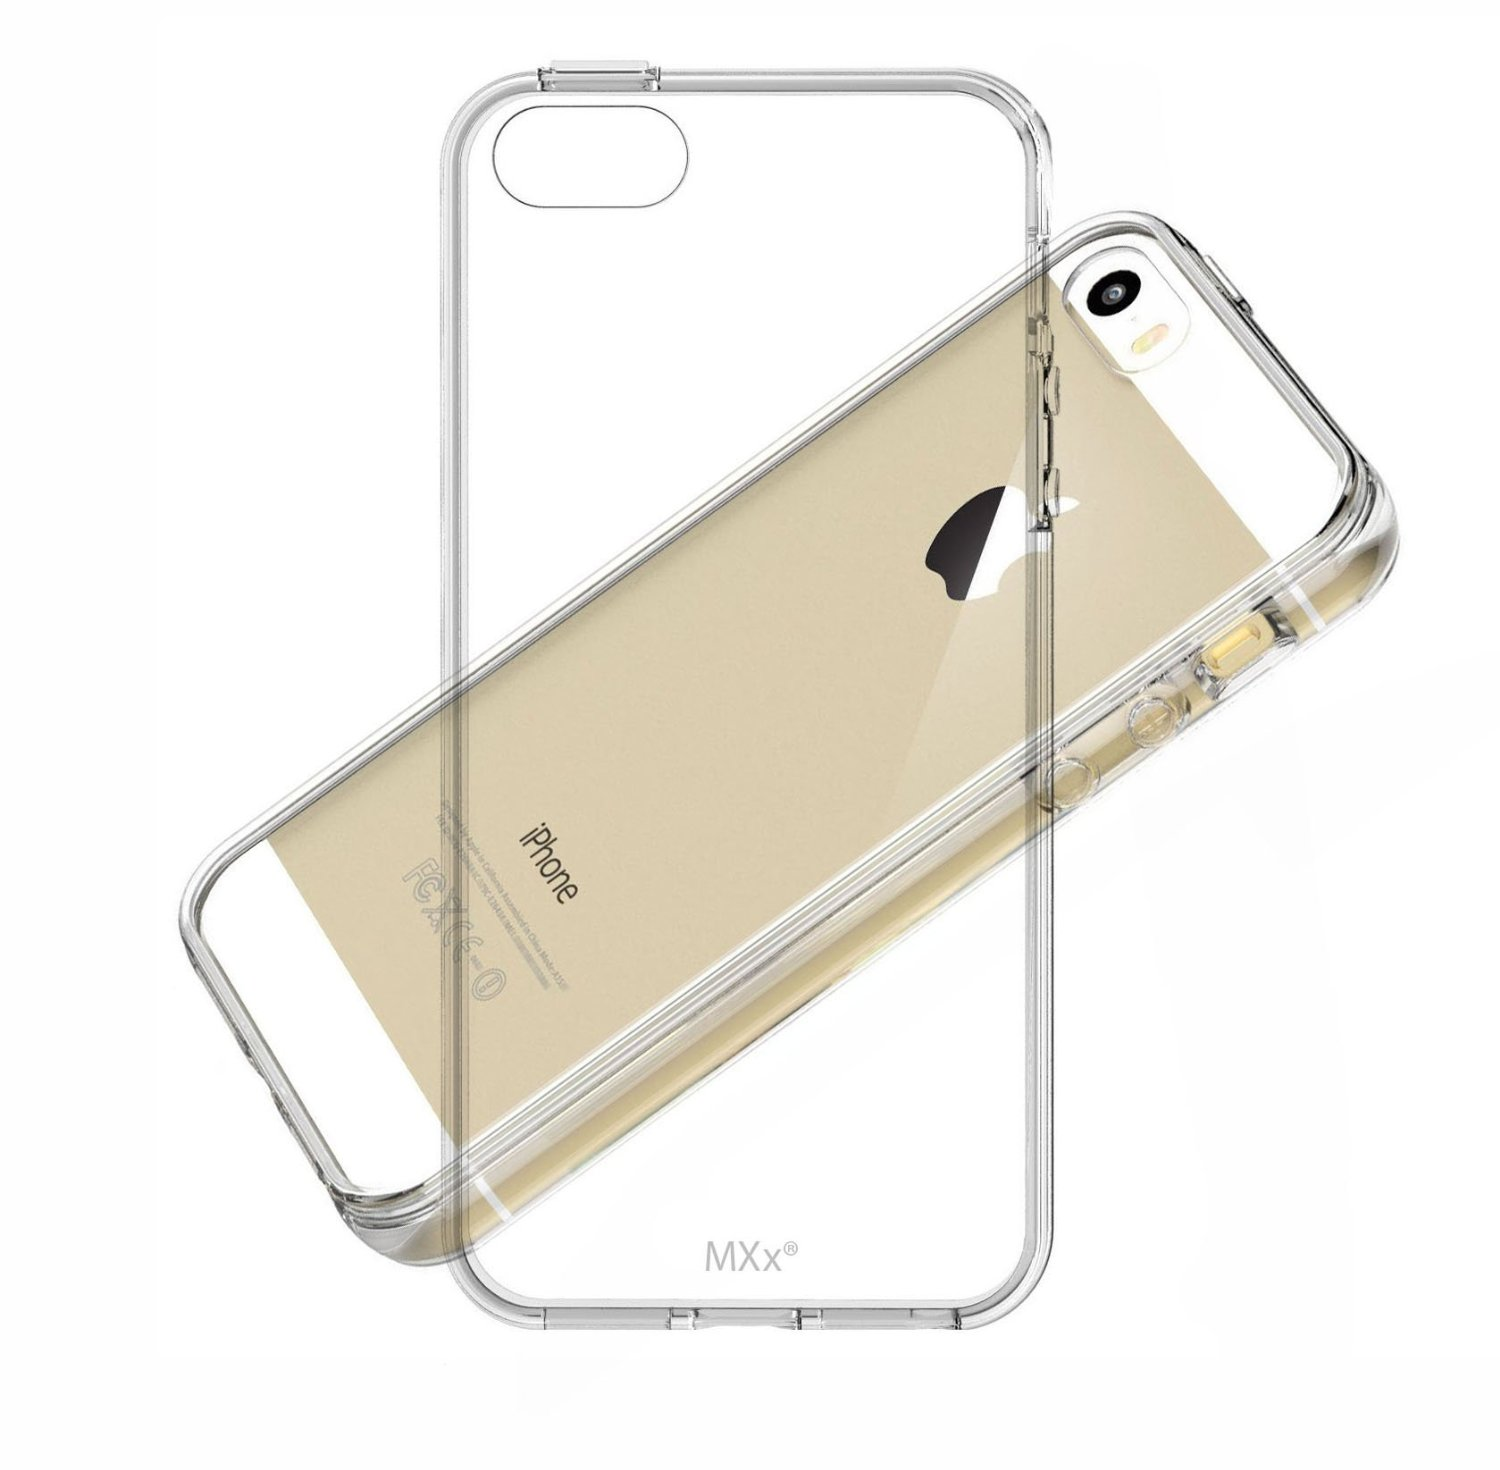 Iphone 5s, 5, 5g, Clear Case, Clear Case Protector : MXX